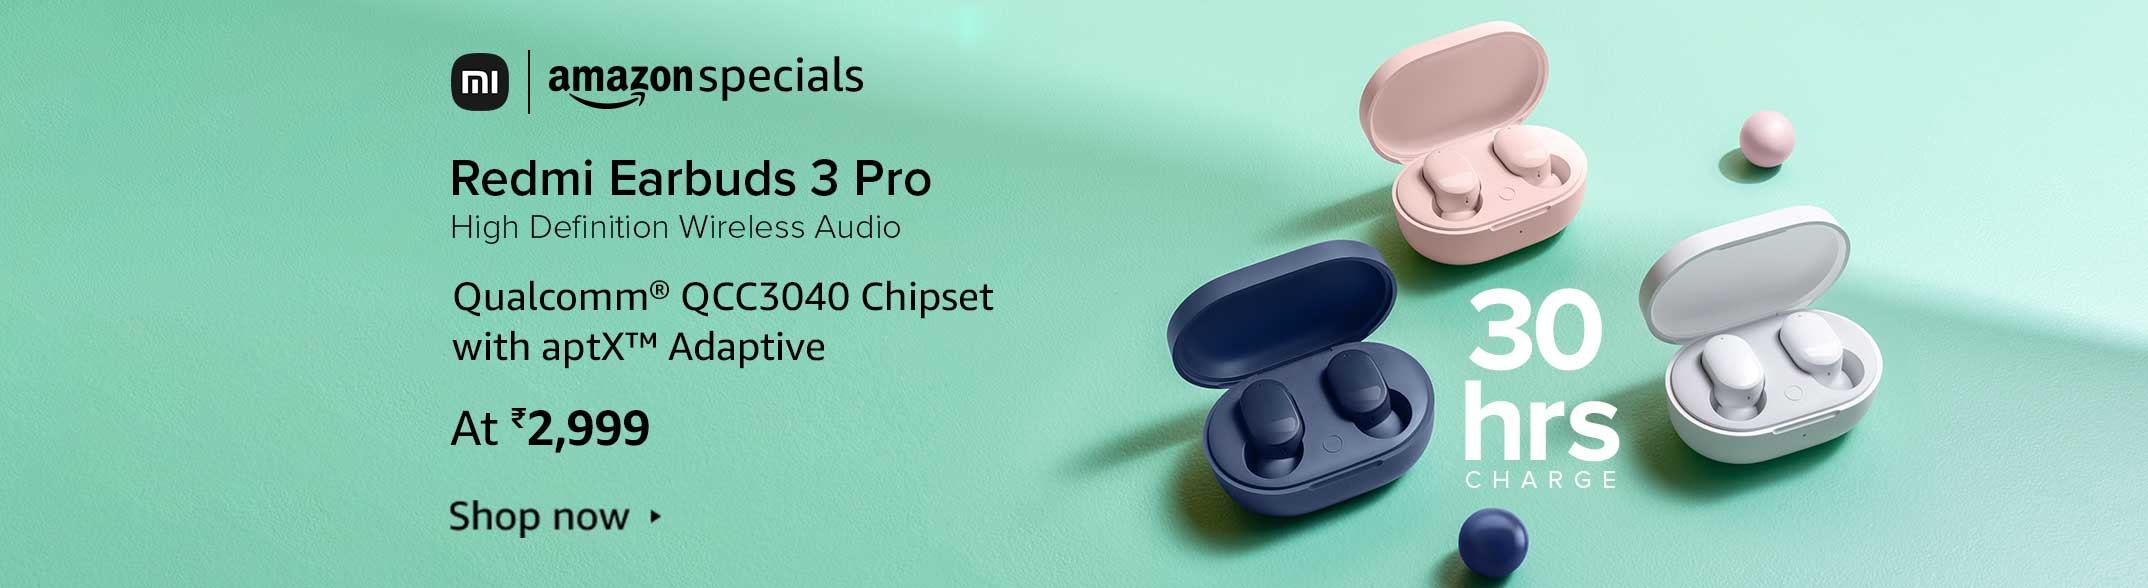 Redmi Earbuds 3 Pro, Blue, High Definition Wireless Audio with Qualcomm chipset, Dual Drivers, Up to 30 Hours Battery Life, IPX4 Splash & Sweat Proof